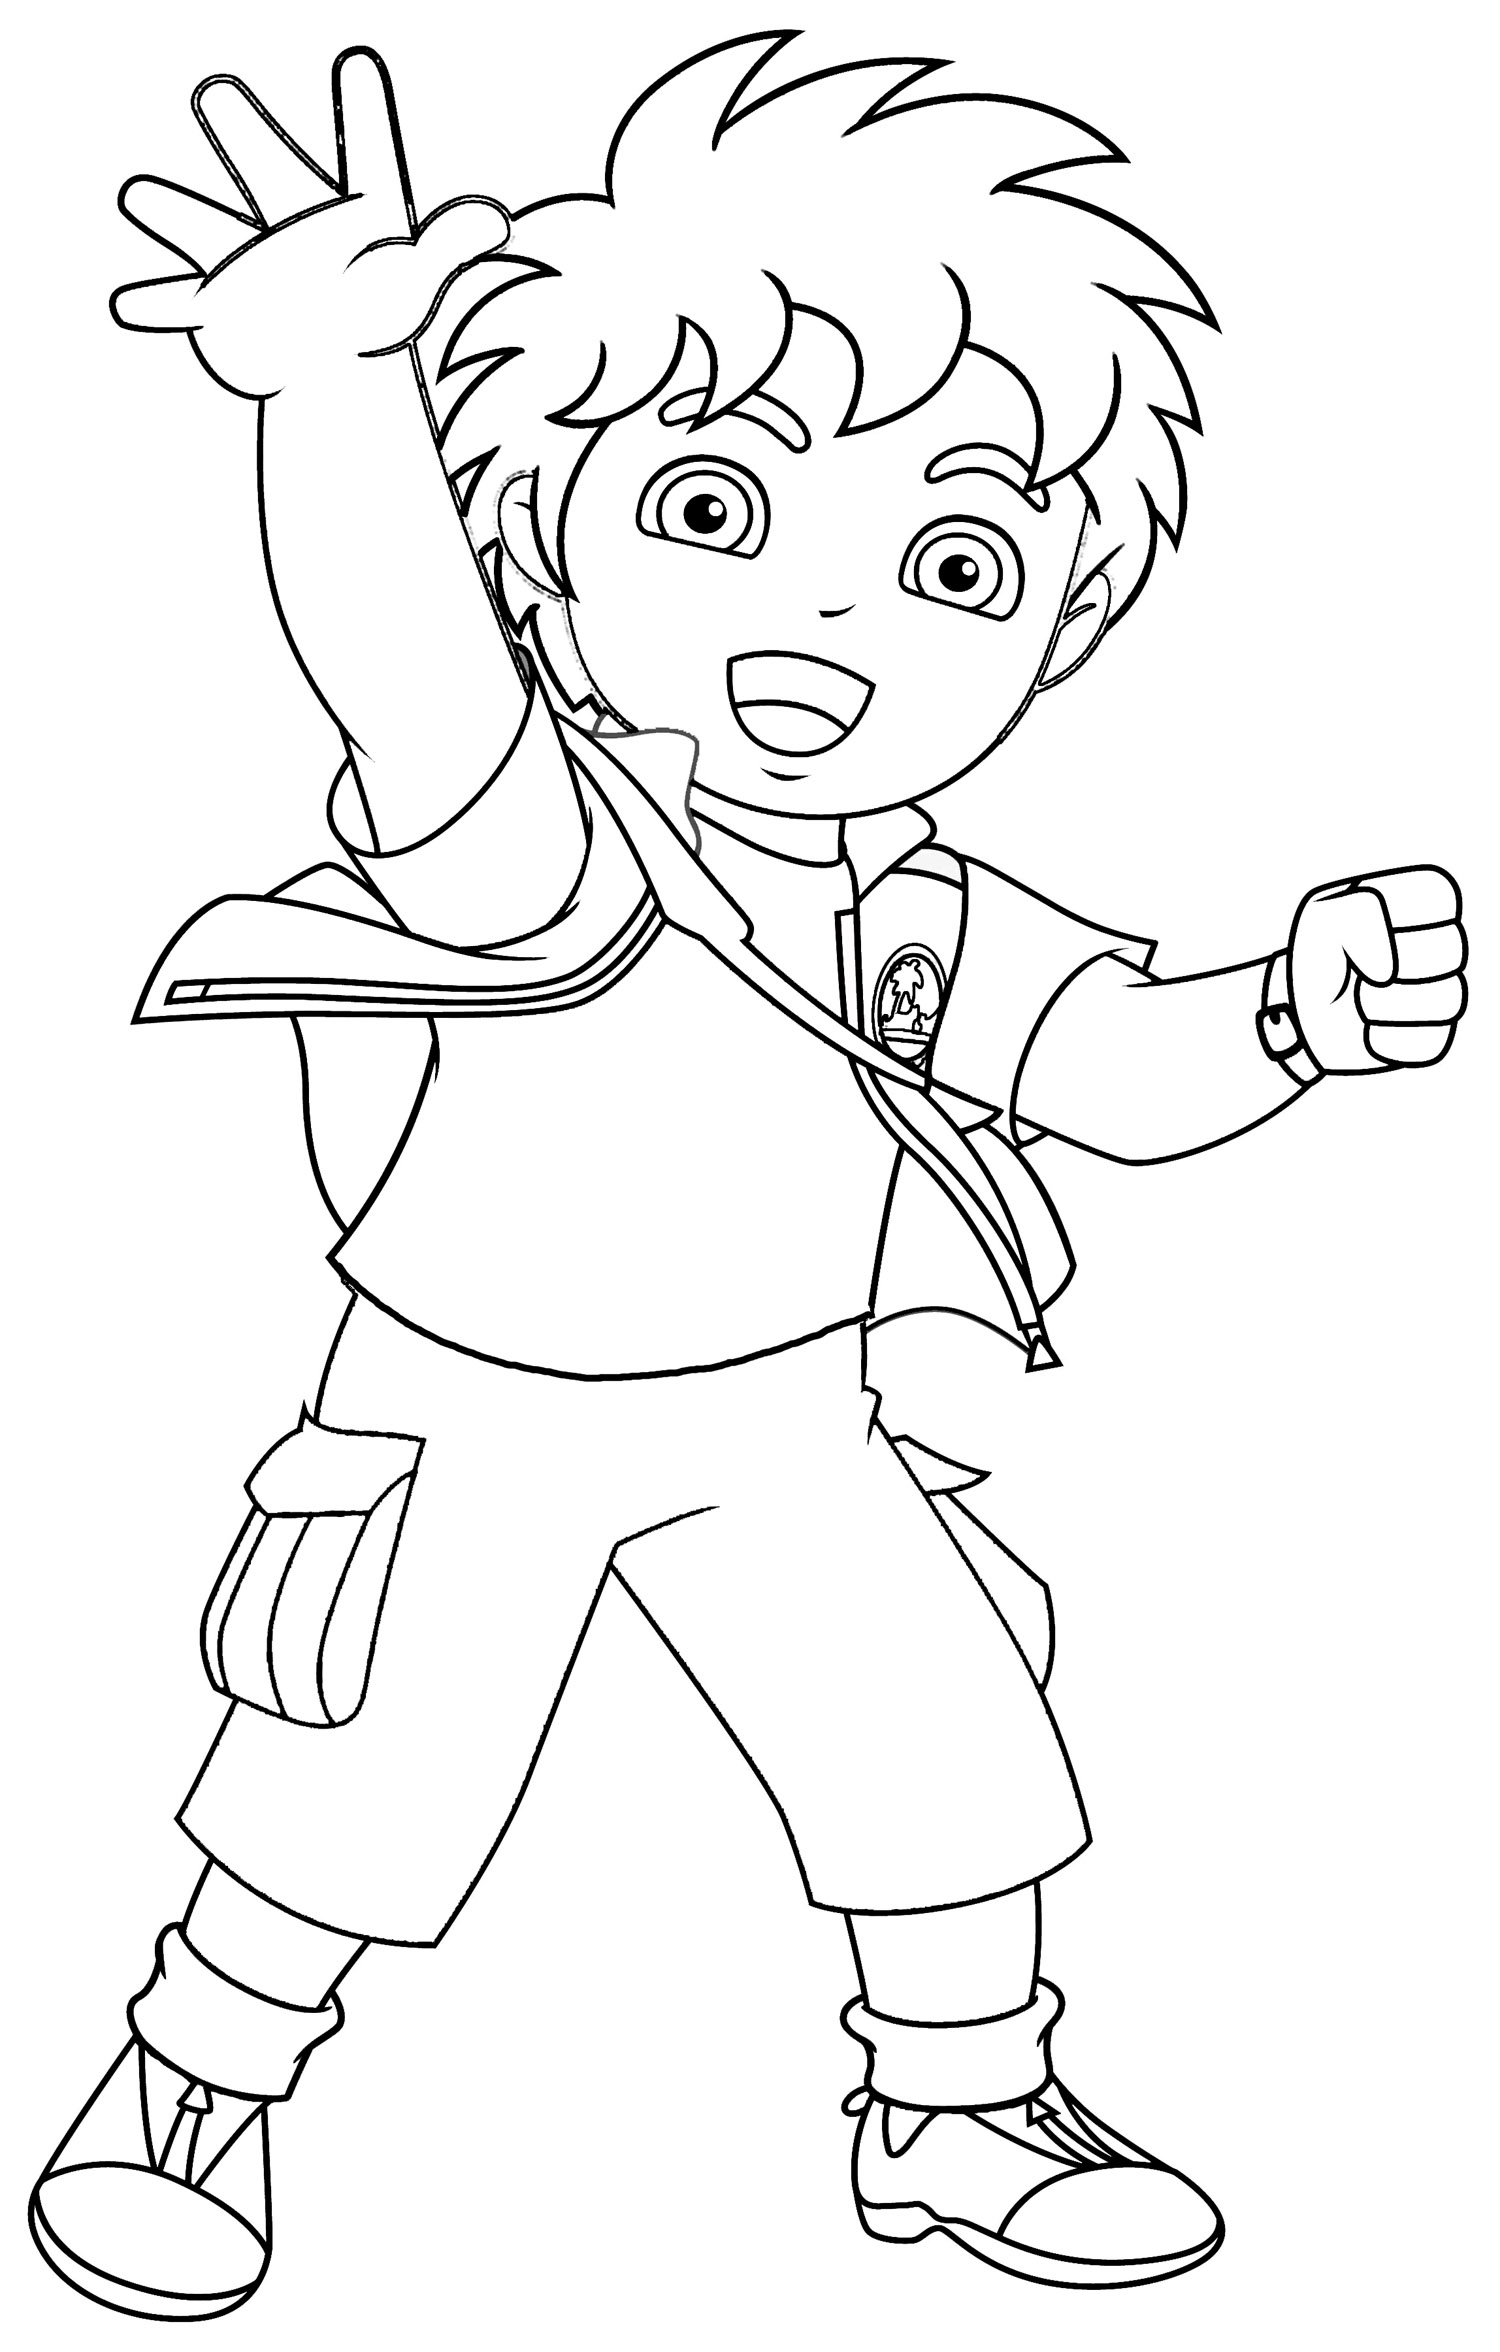 Dora And Friends Coloring Pages - Coloring Home | 2352x1500